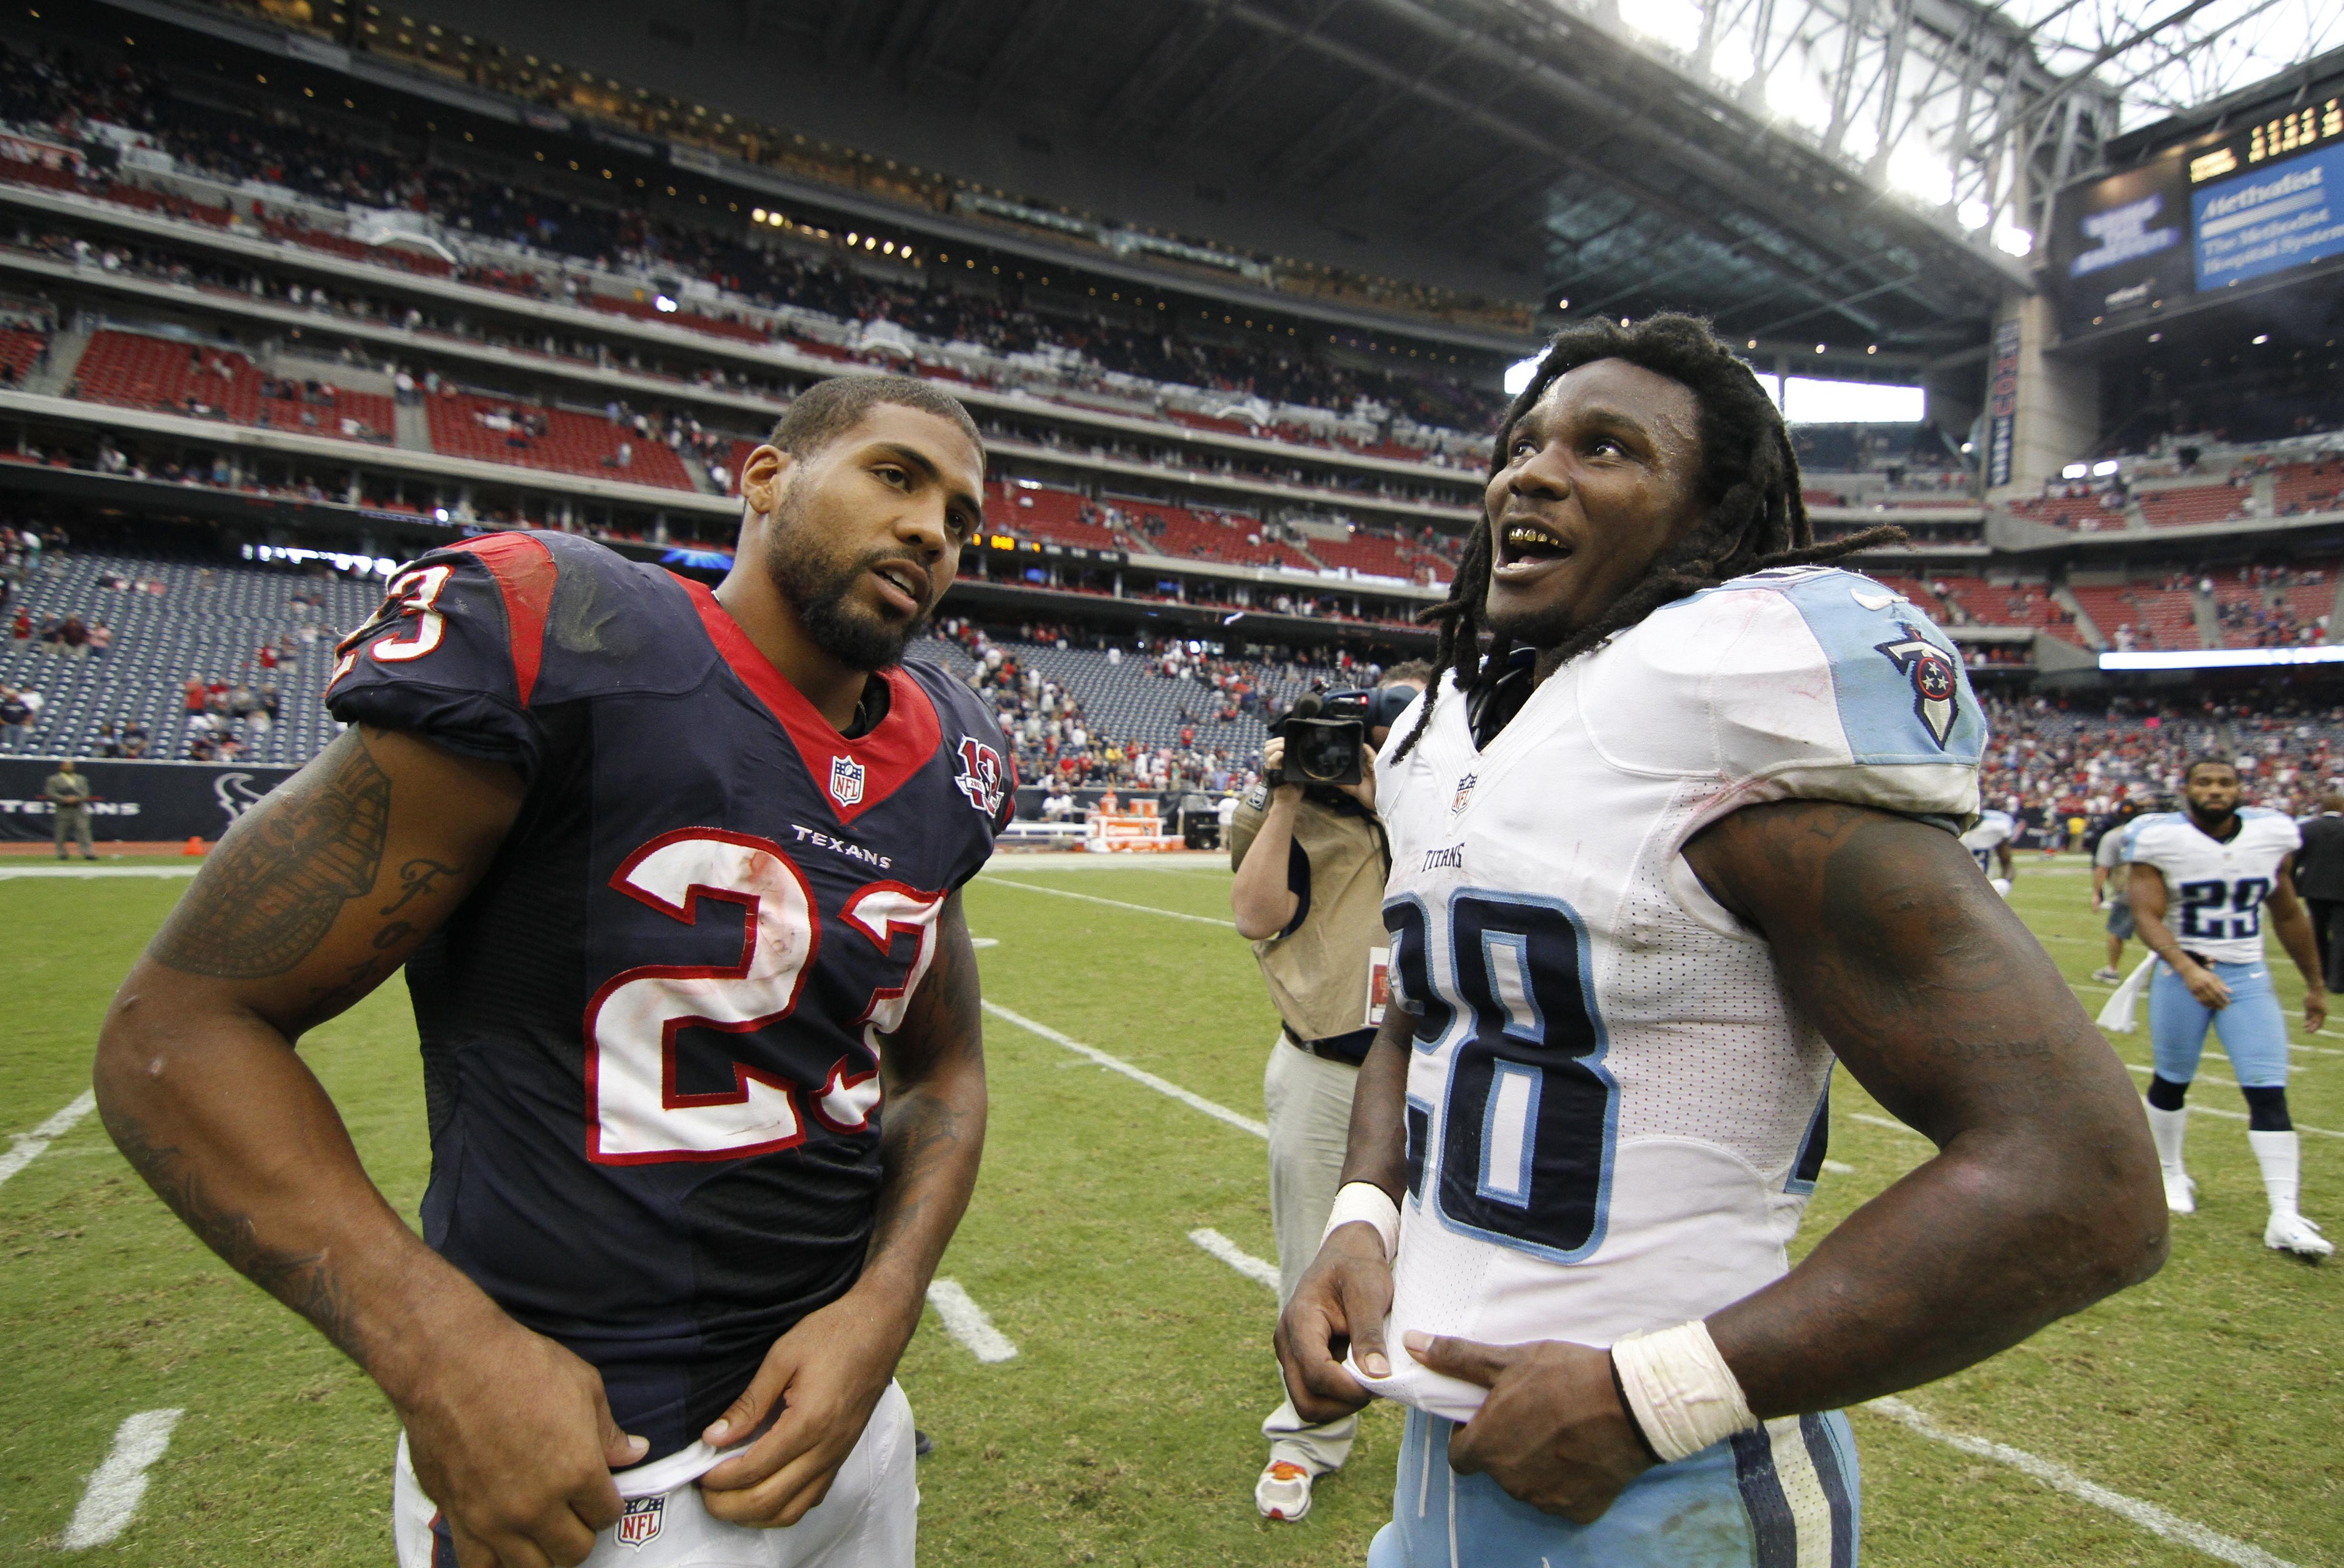 Only one of these RBs will be smiling come Sunday.